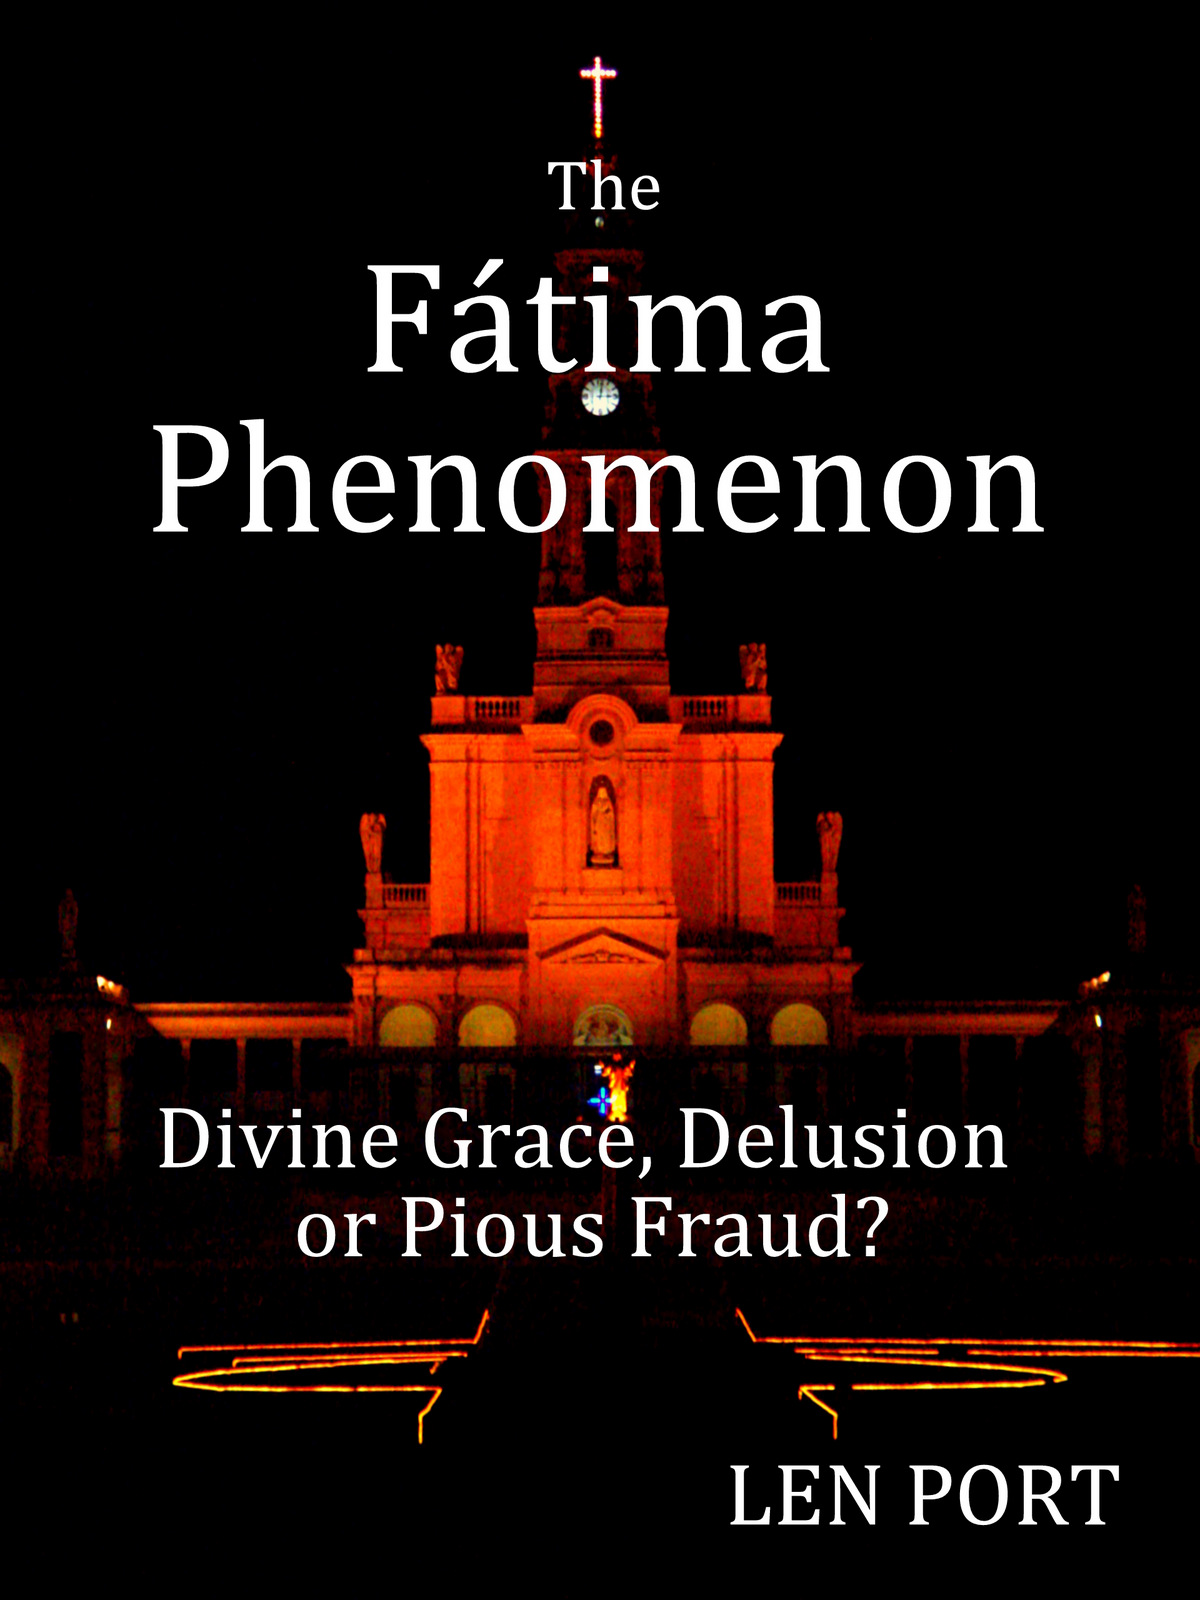 FATIMA KINDLE BOOK IN ENGLISH